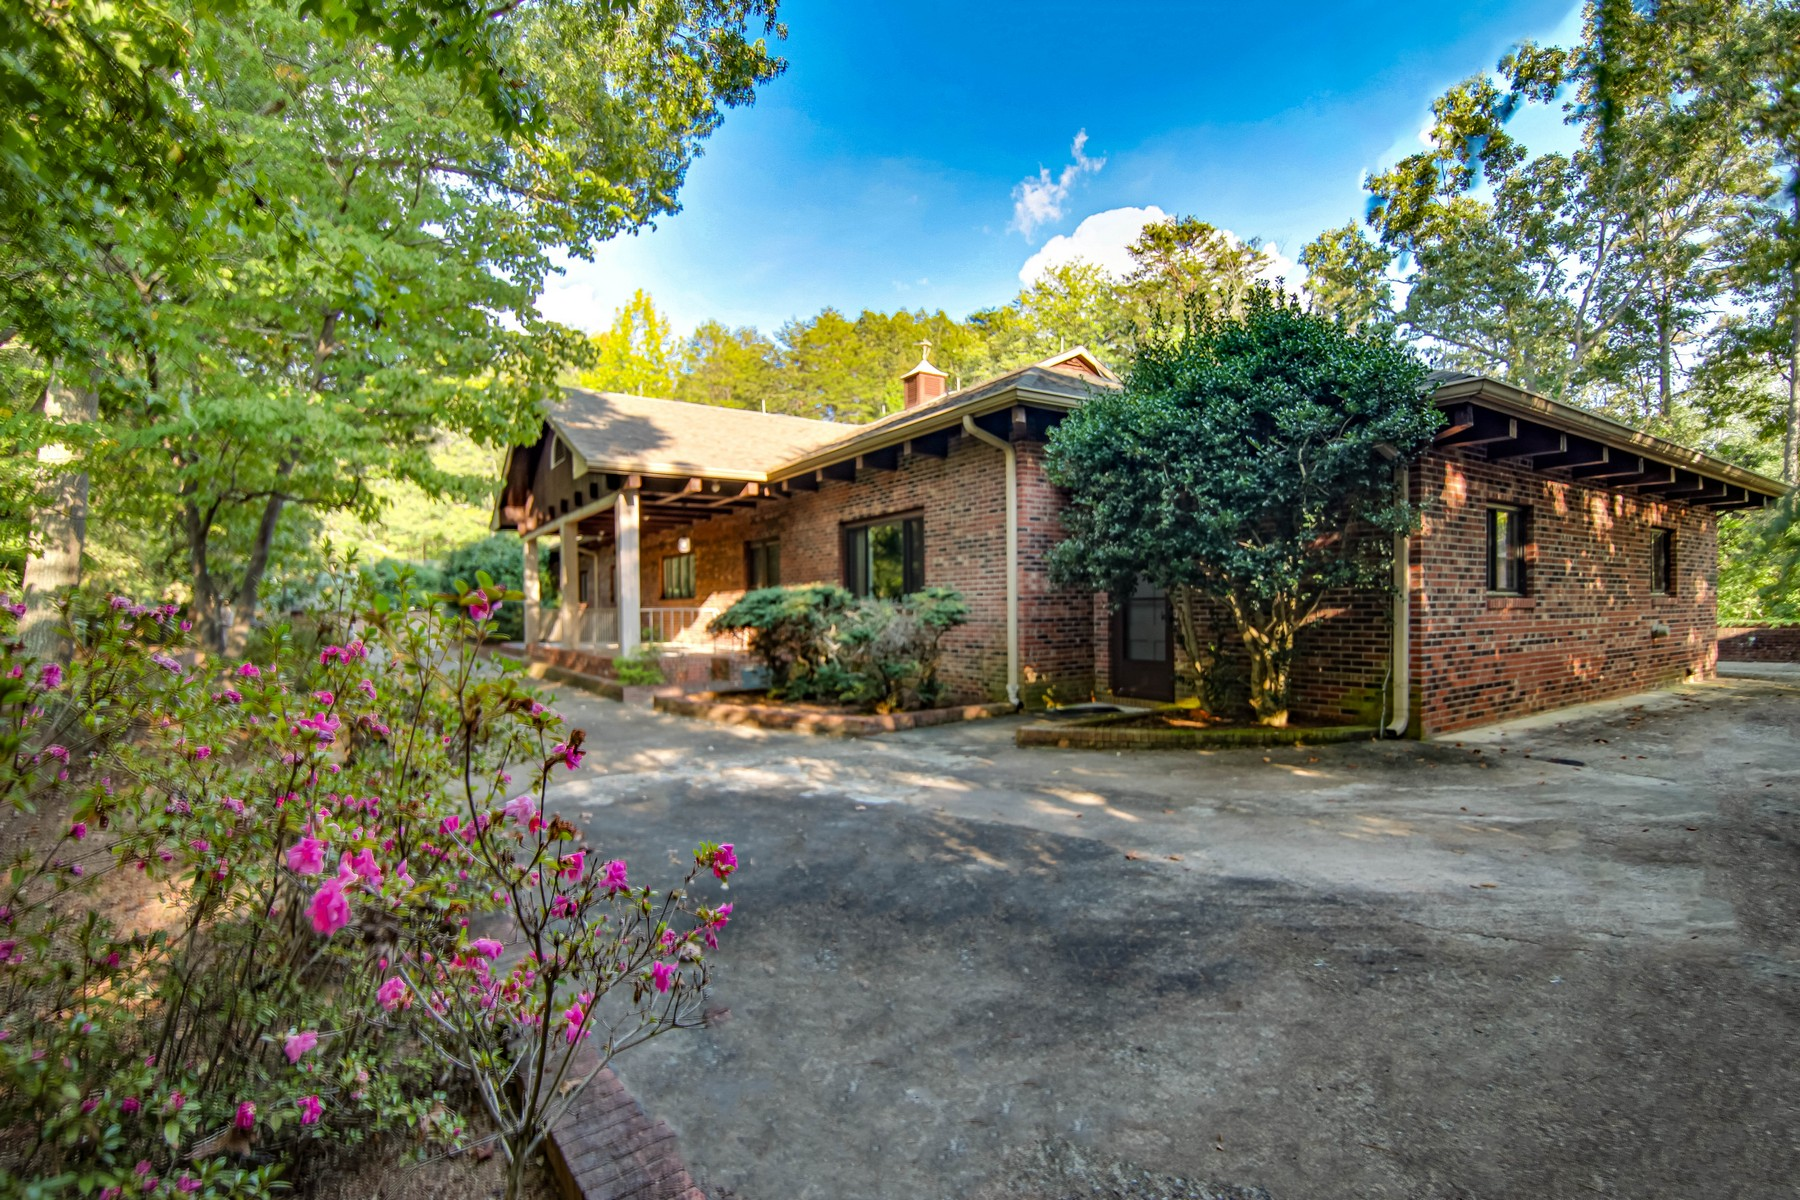 Single Family Homes for Sale at 152 Muscadine Ridge, Rutherfordton, NC 152 Muscadine Ridge Rutherfordton, North Carolina 28139 United States